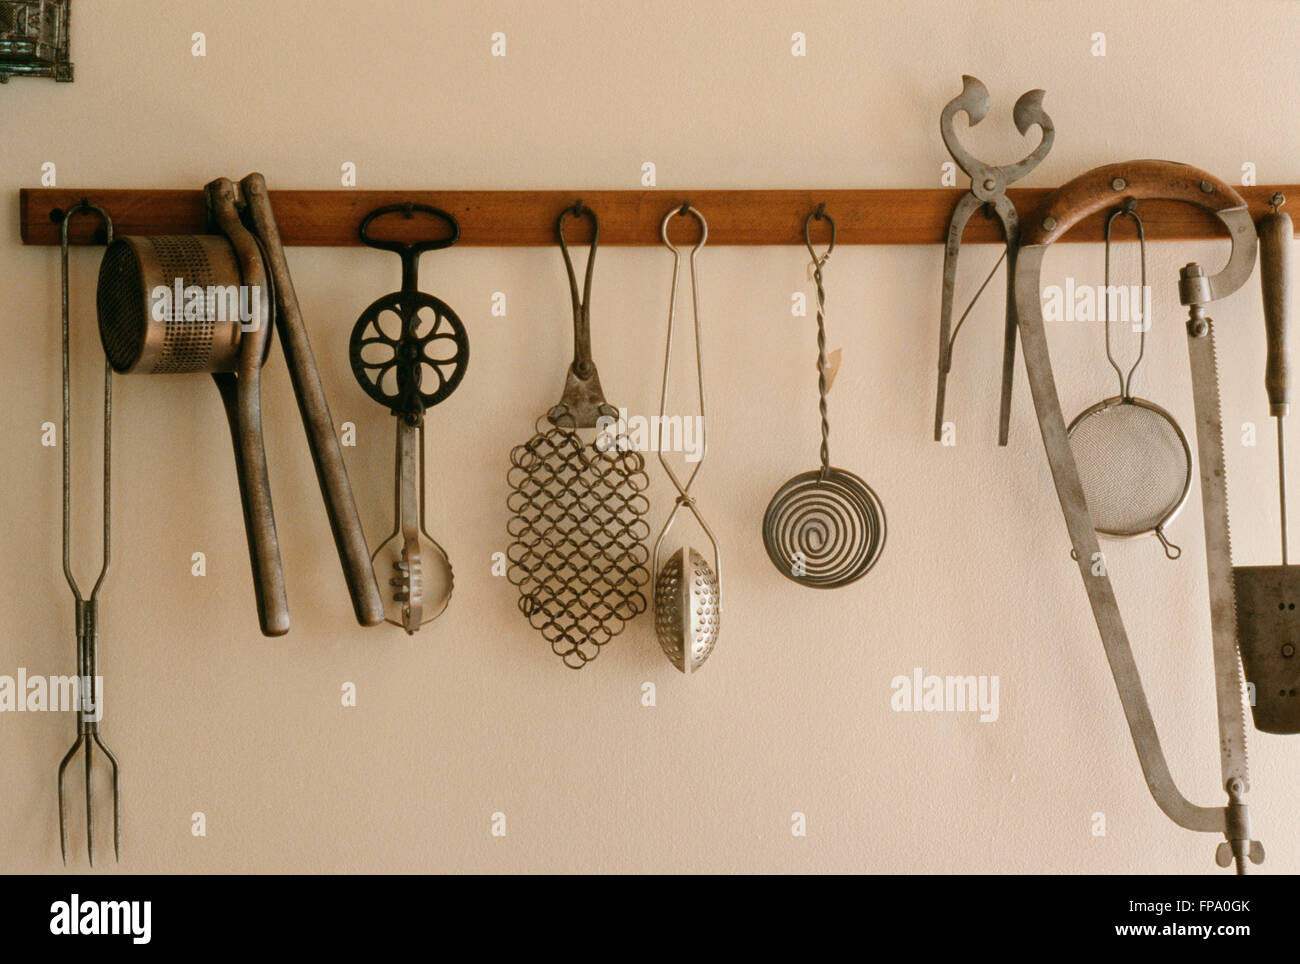 Charmant Vintage Kitchen Gadgets Hanging From A Rack   Stock Image